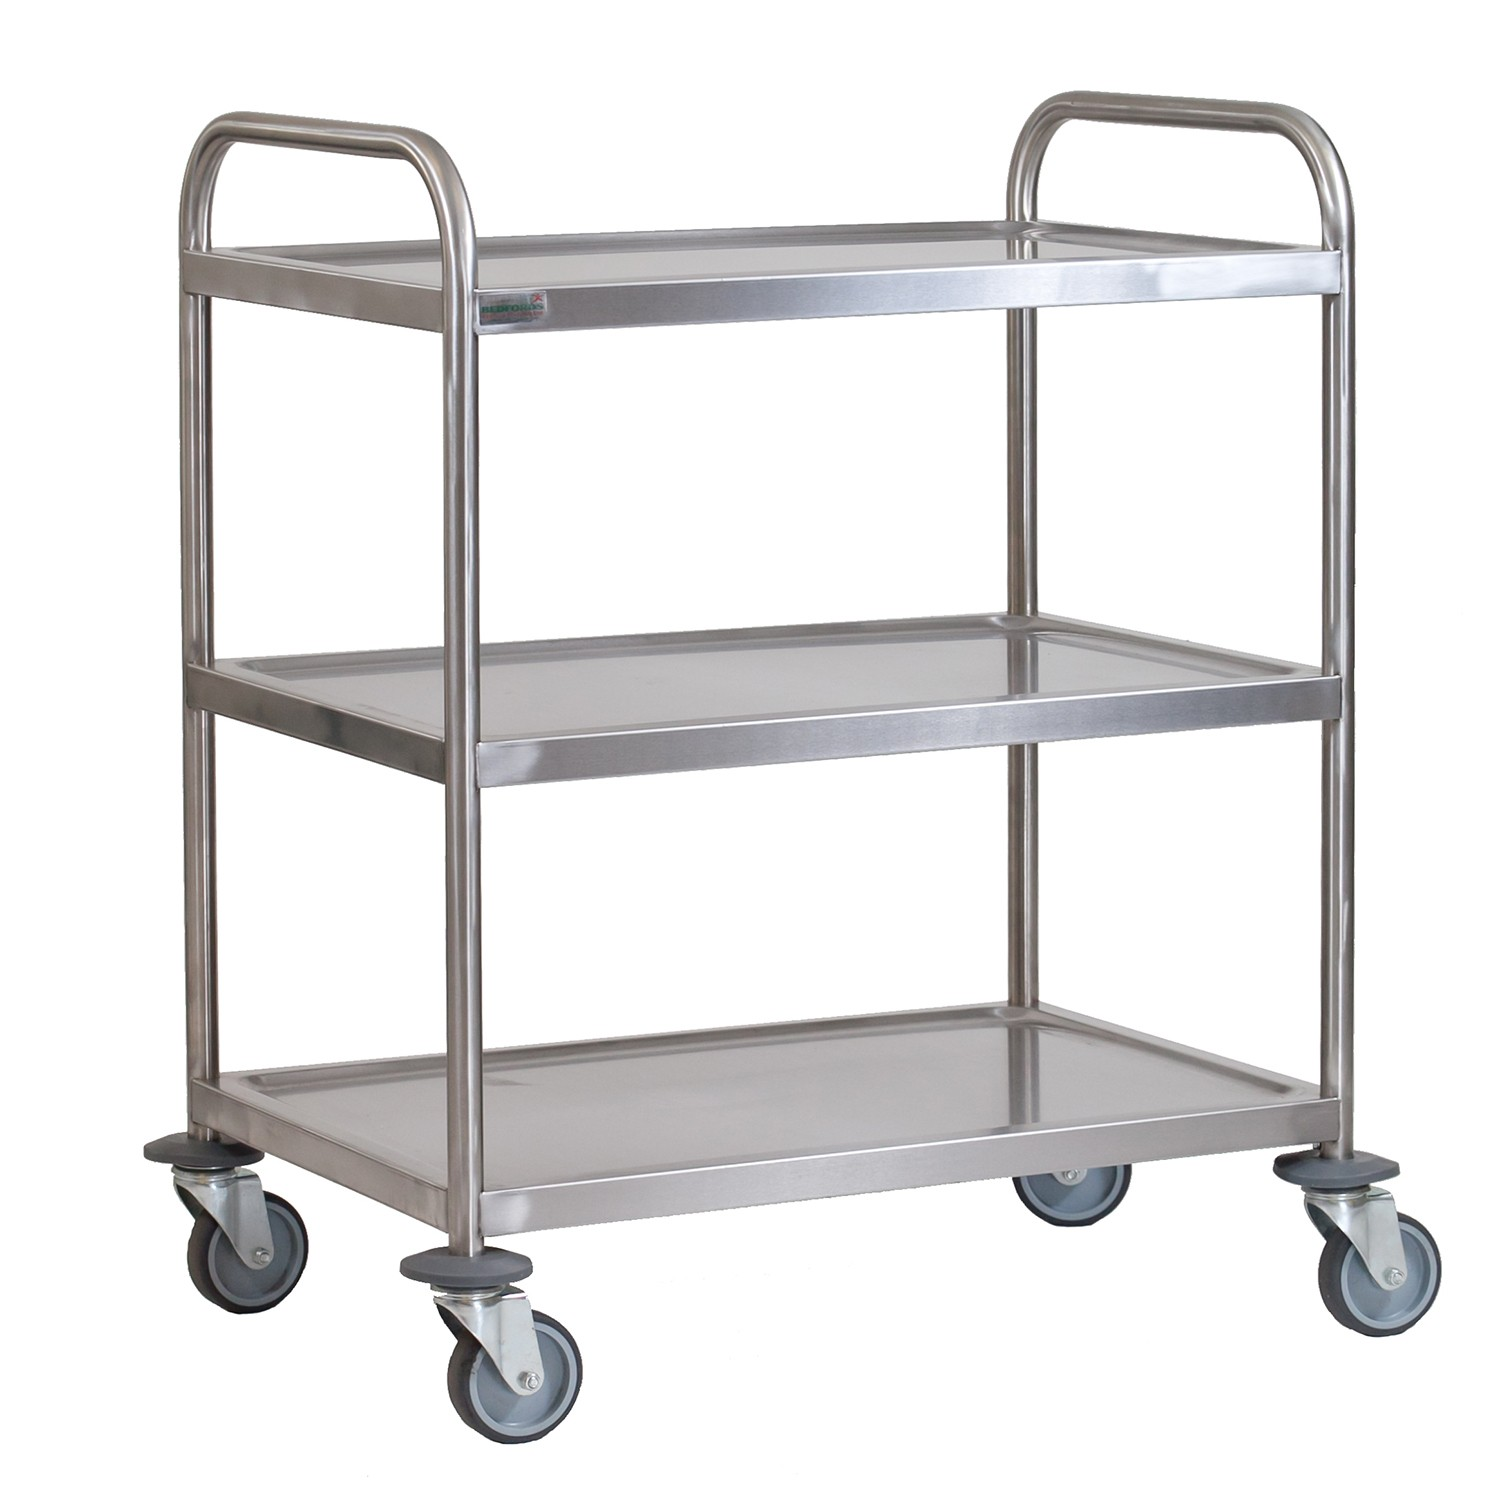 Kitchen Trolley Accessories: Stainless Steel 3 Tier Trolley Small